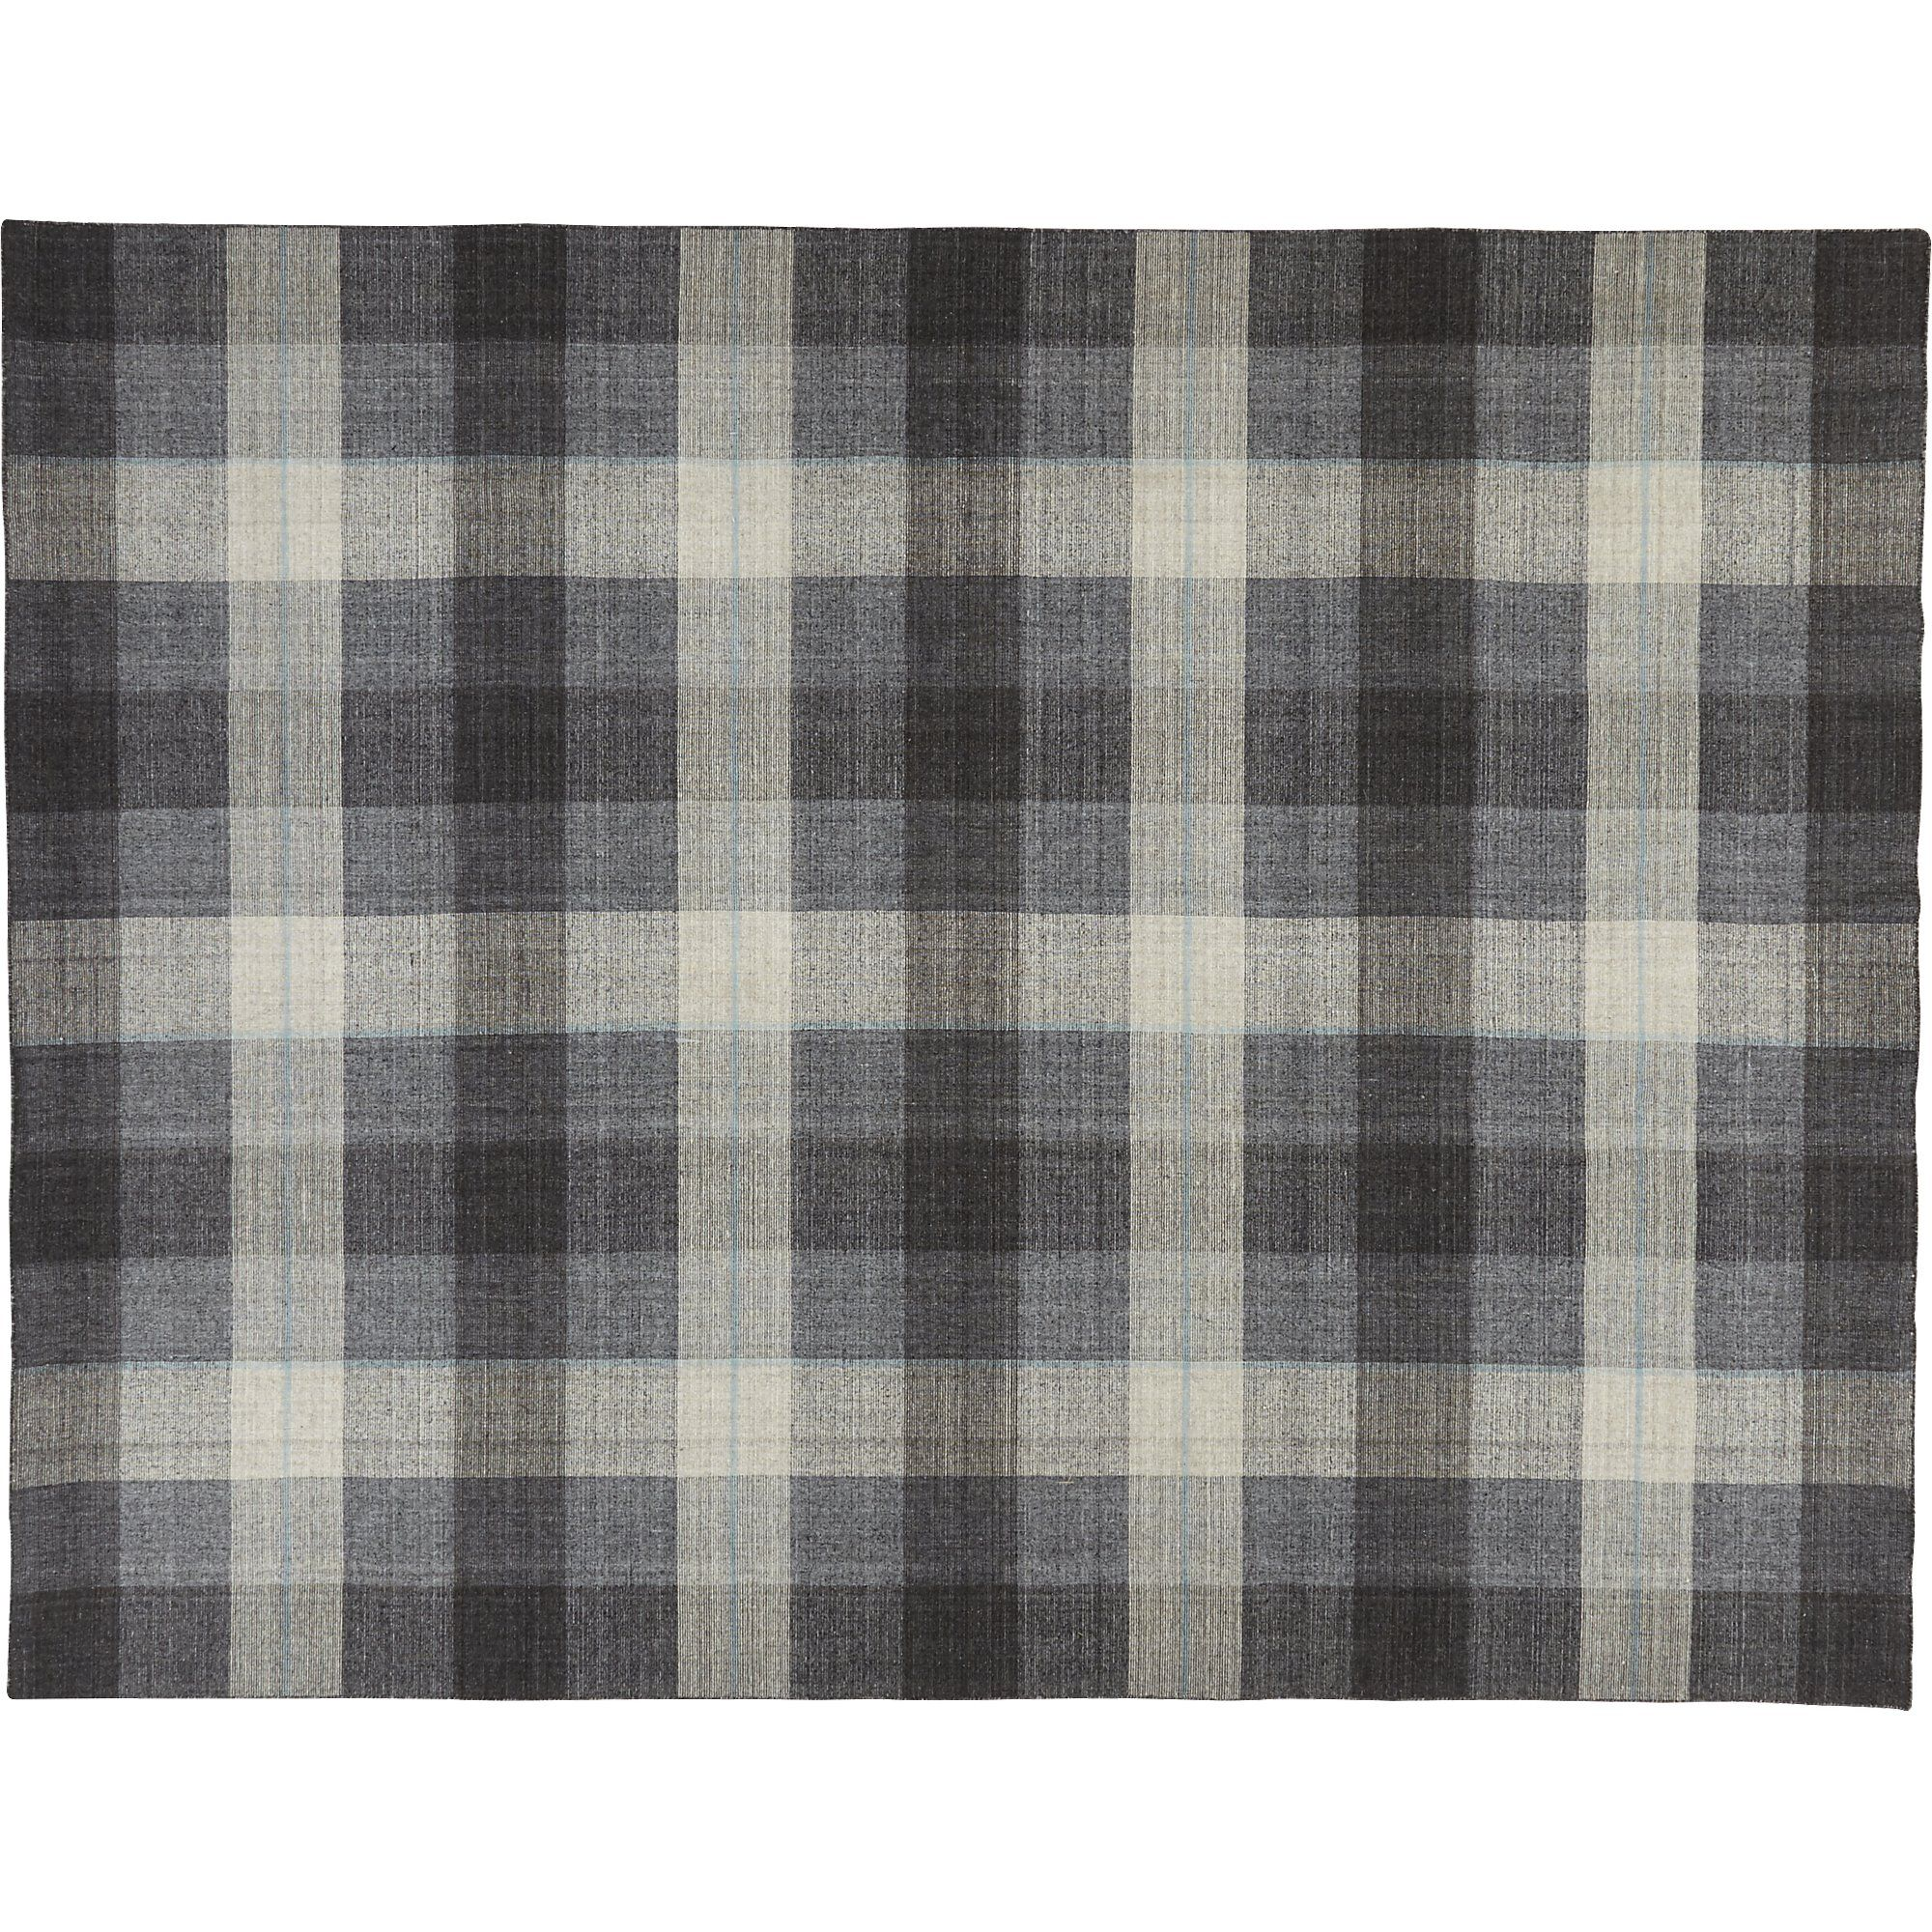 Shop tailor plaid rug.   Like a fine tailored suit turned rug.  Classic plaid is made modern in tonal neutrals and a pinstripe of blue.  Hand-loomed flatweave with semi twisted yarn adds welcoming texture to any room.